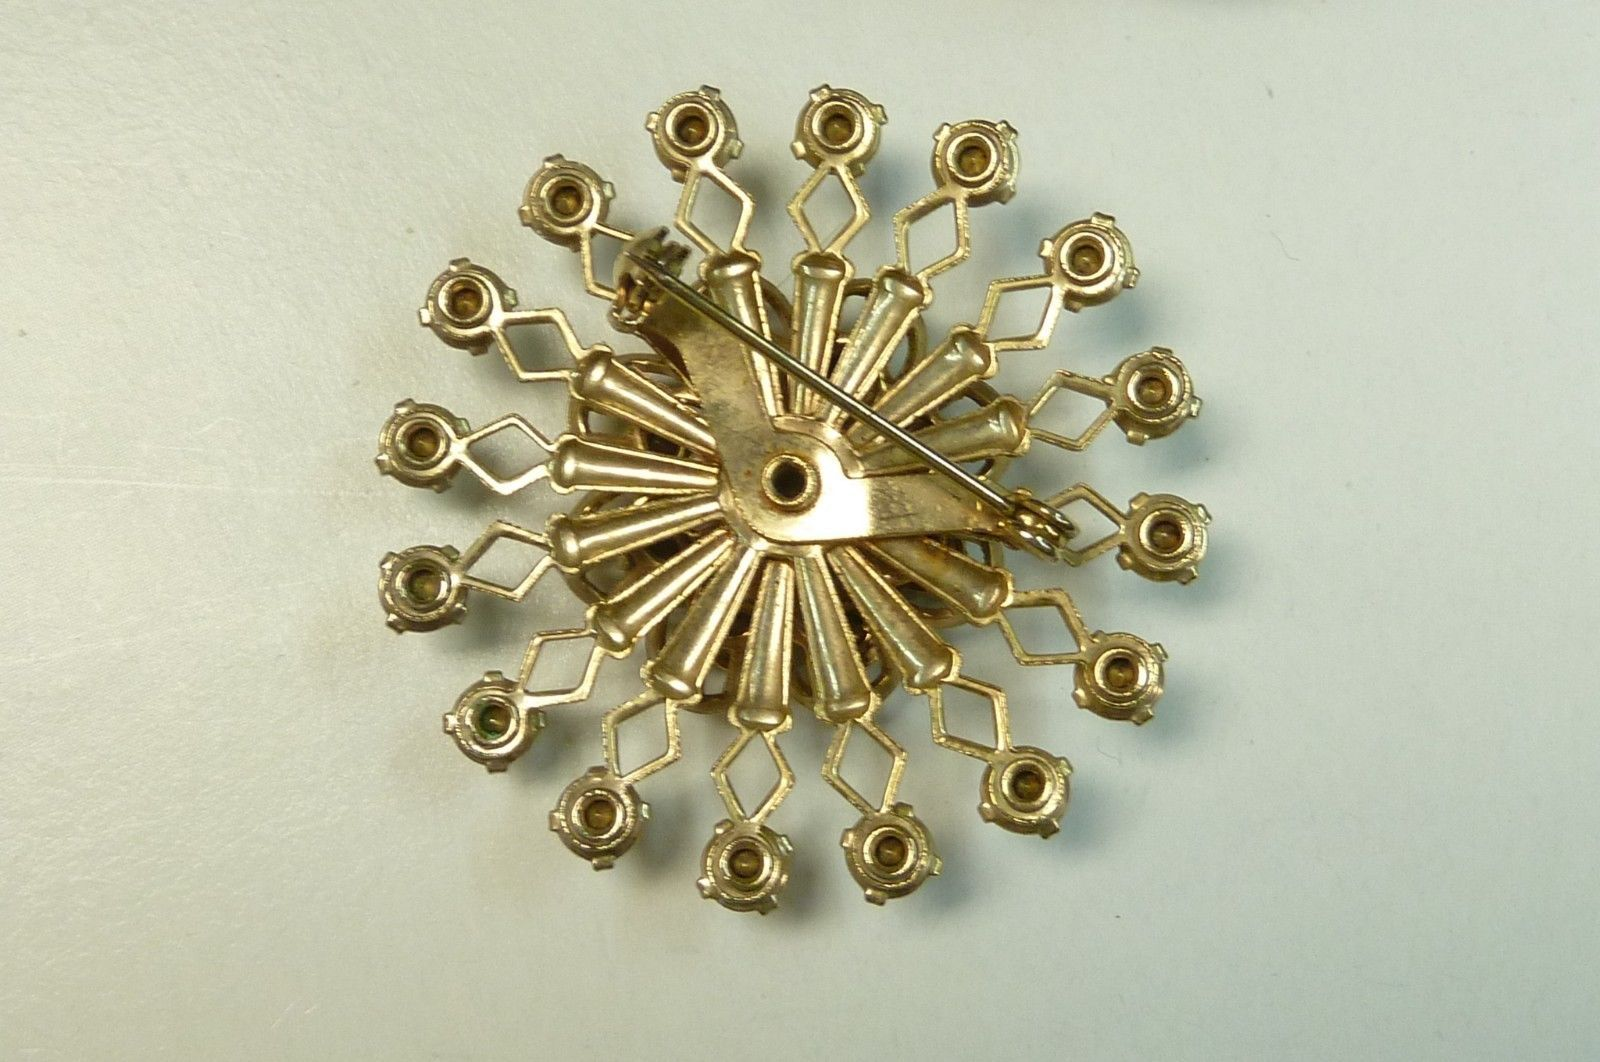 Vintage Blue Rhinestone Round Gold Plated Costume Fashion Pin Brooch image 6